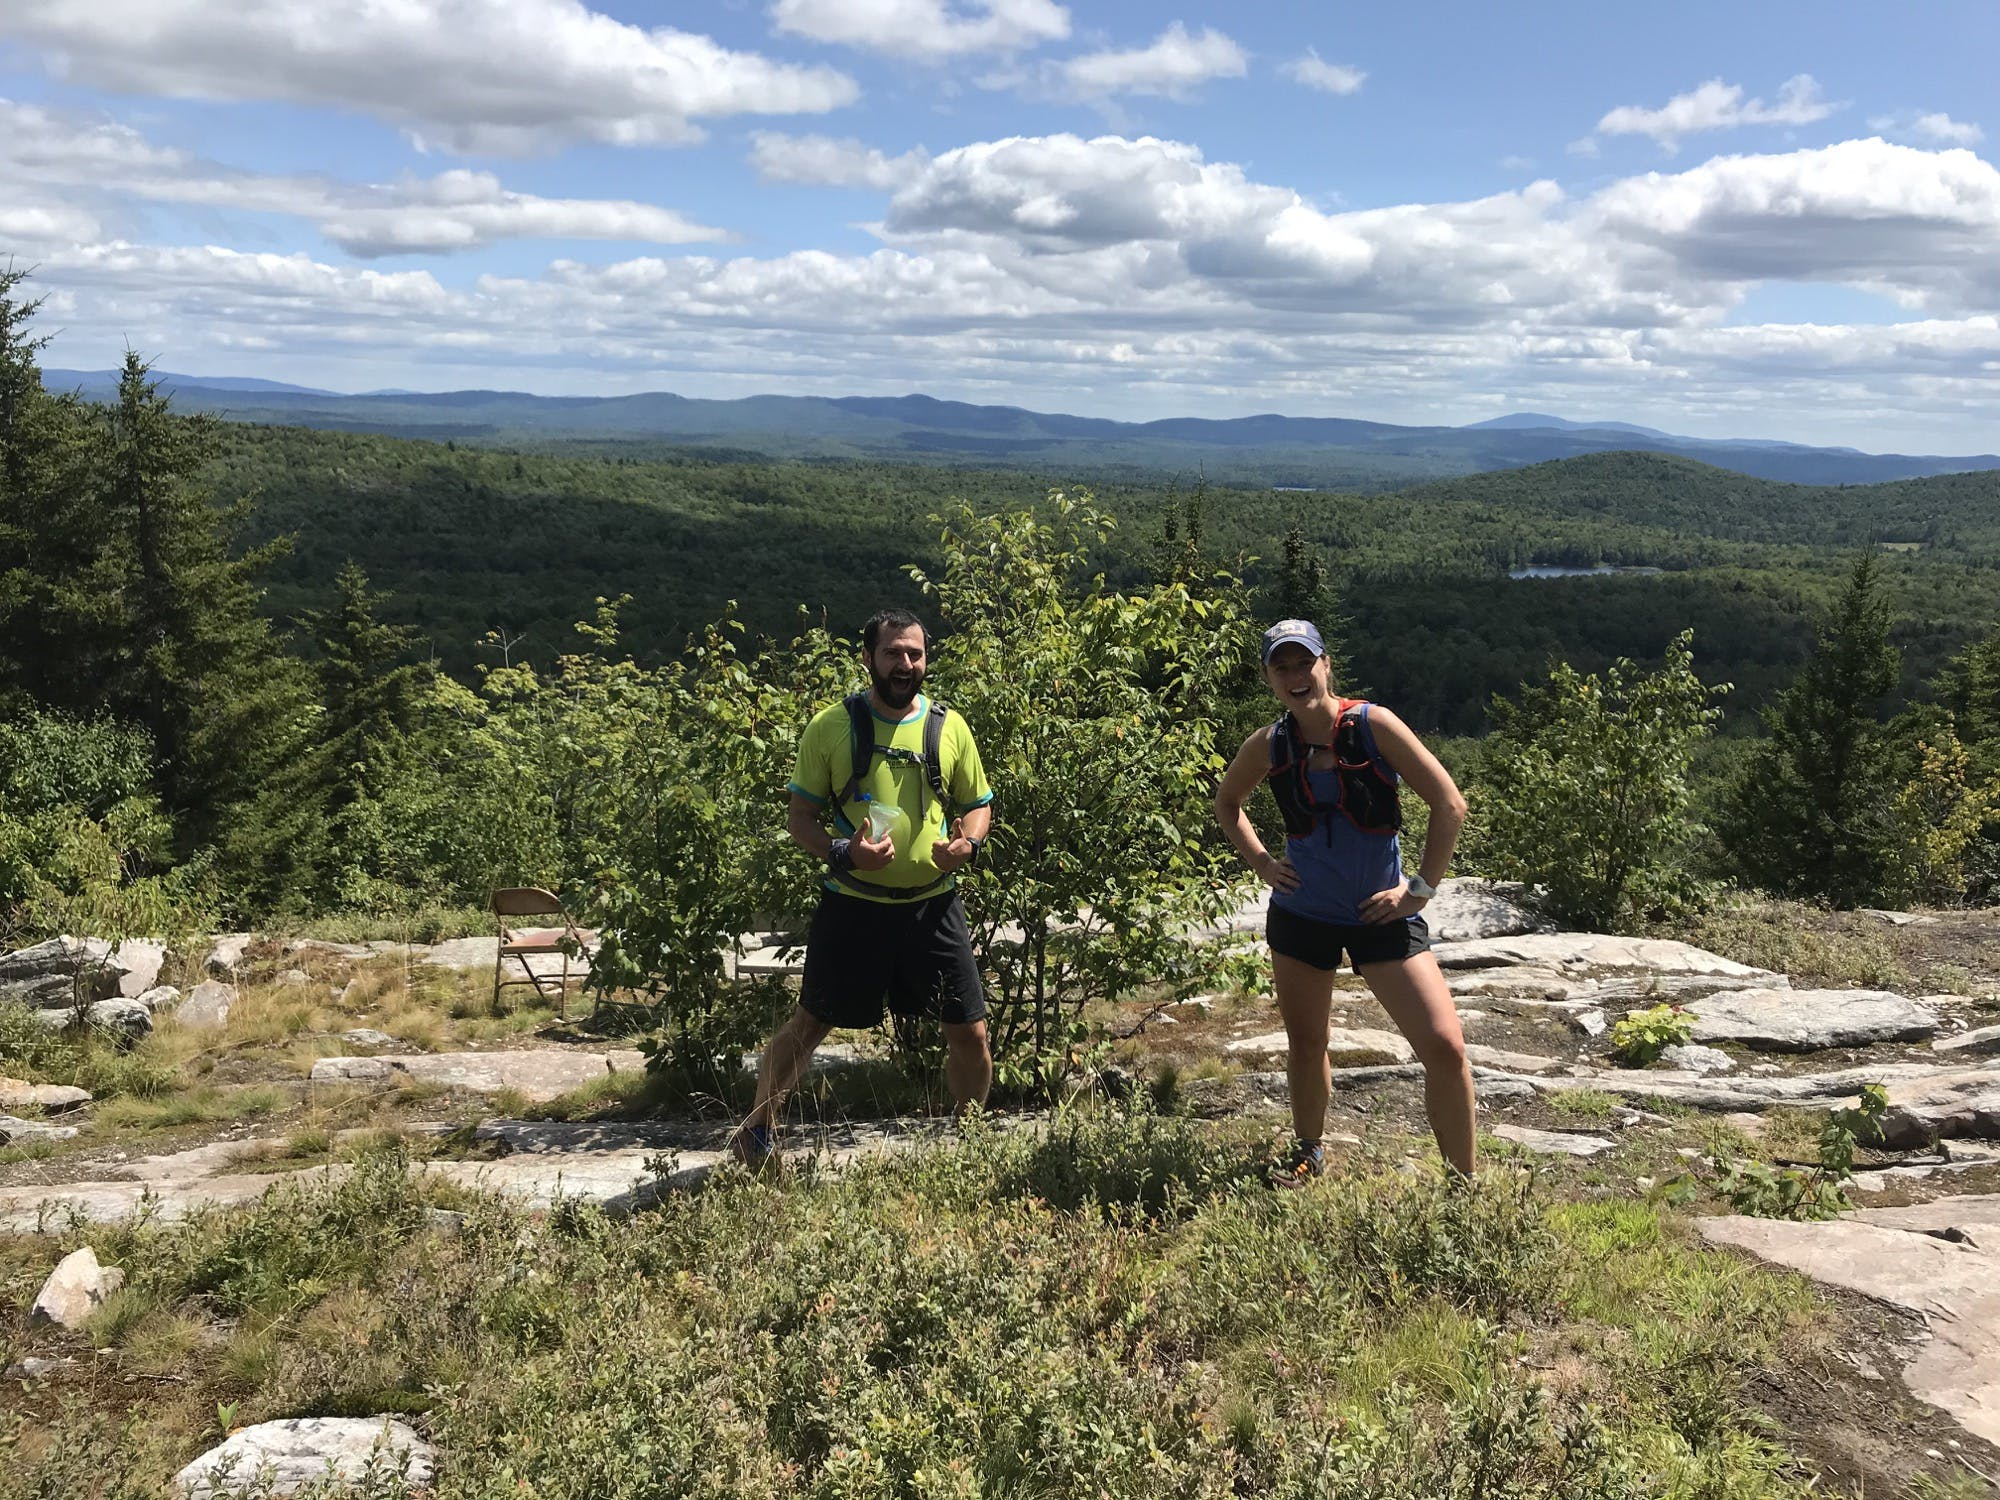 8/11 A 25 miler with Leah and John